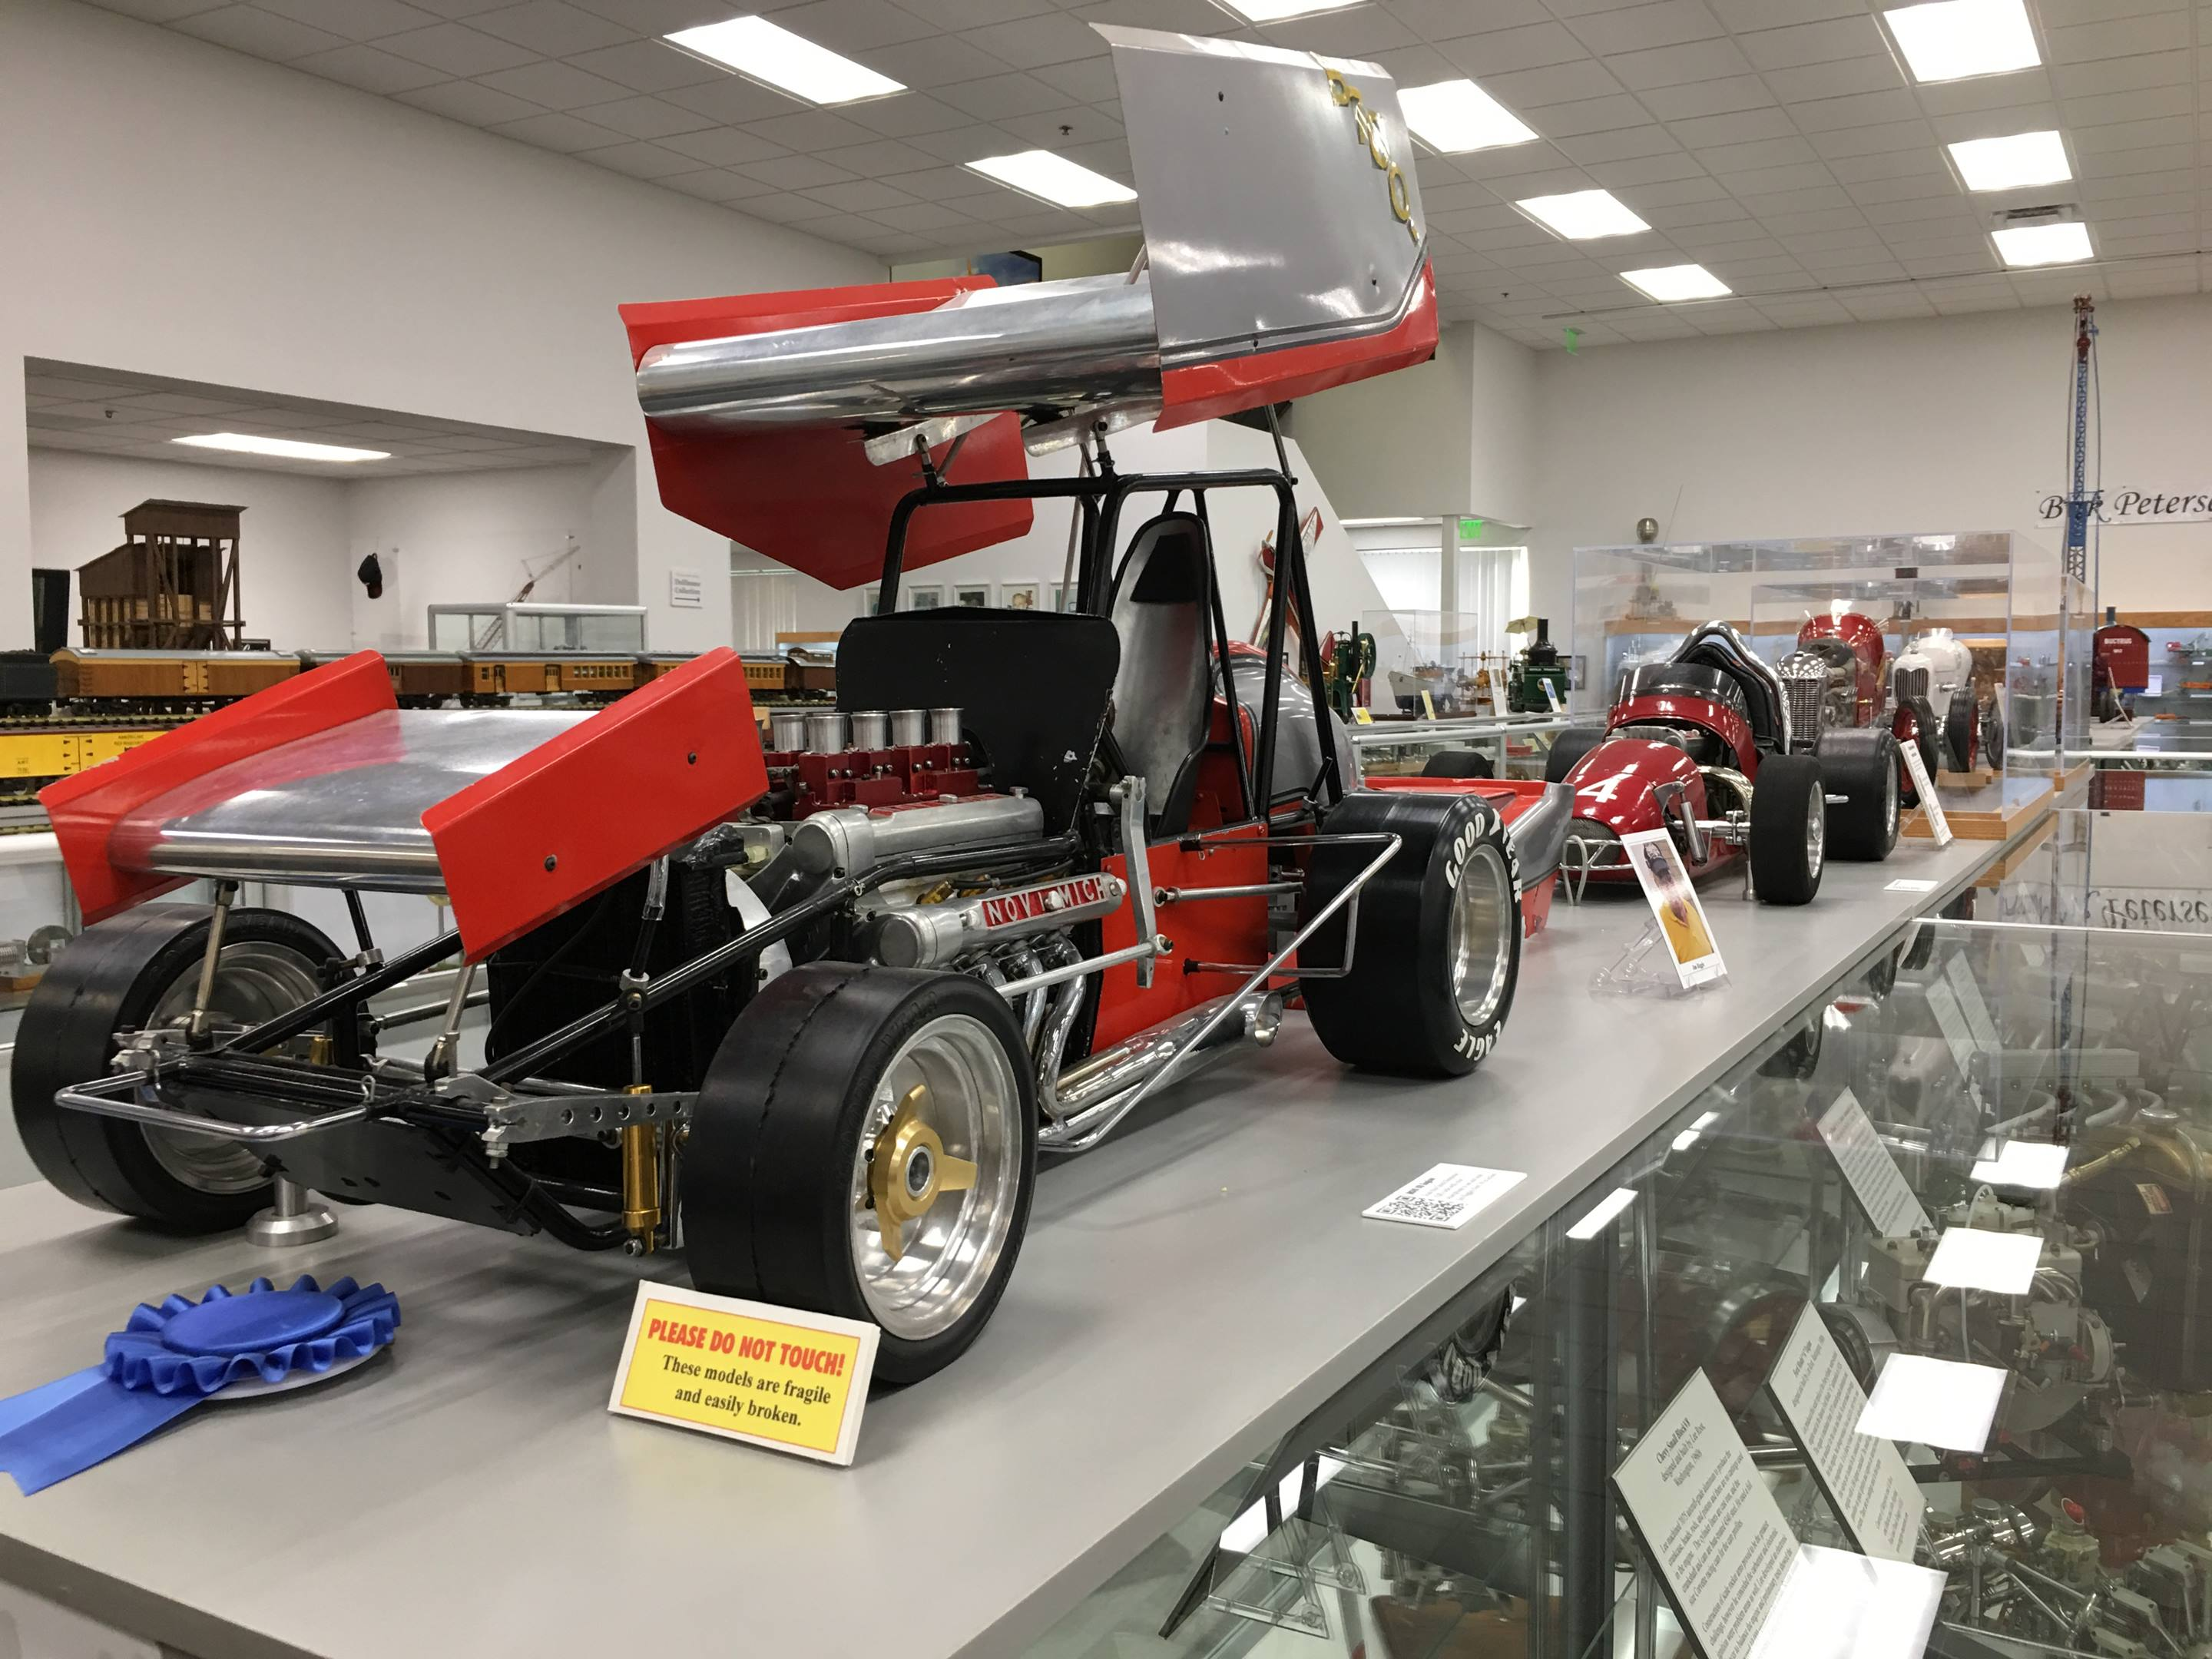 This quarter-scale Novi sprint car was built by Jim Riggle of North Dakota in the mid 1980s and features a working dual-overhead-cam four-cylinder with a one-inch bore and stroke.